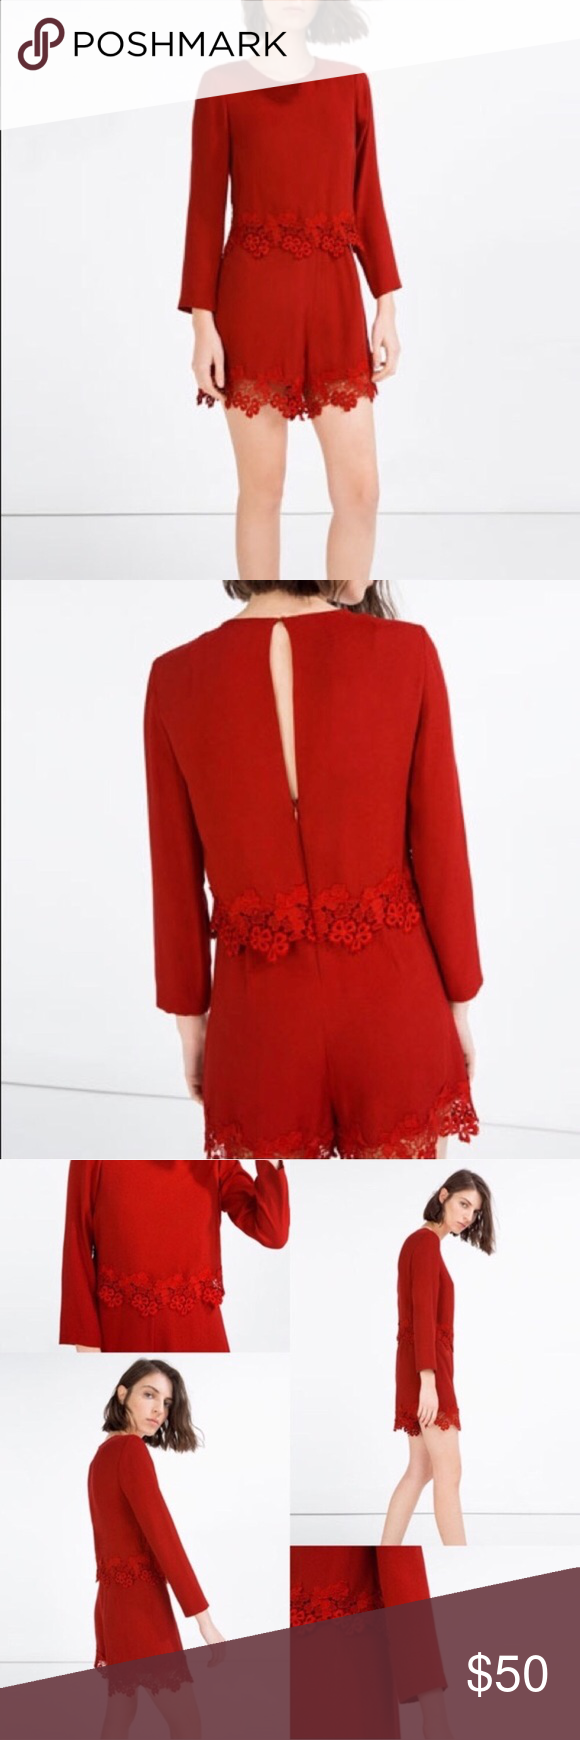 Zara red lace long sleeve romper long sleeve romper red lace and